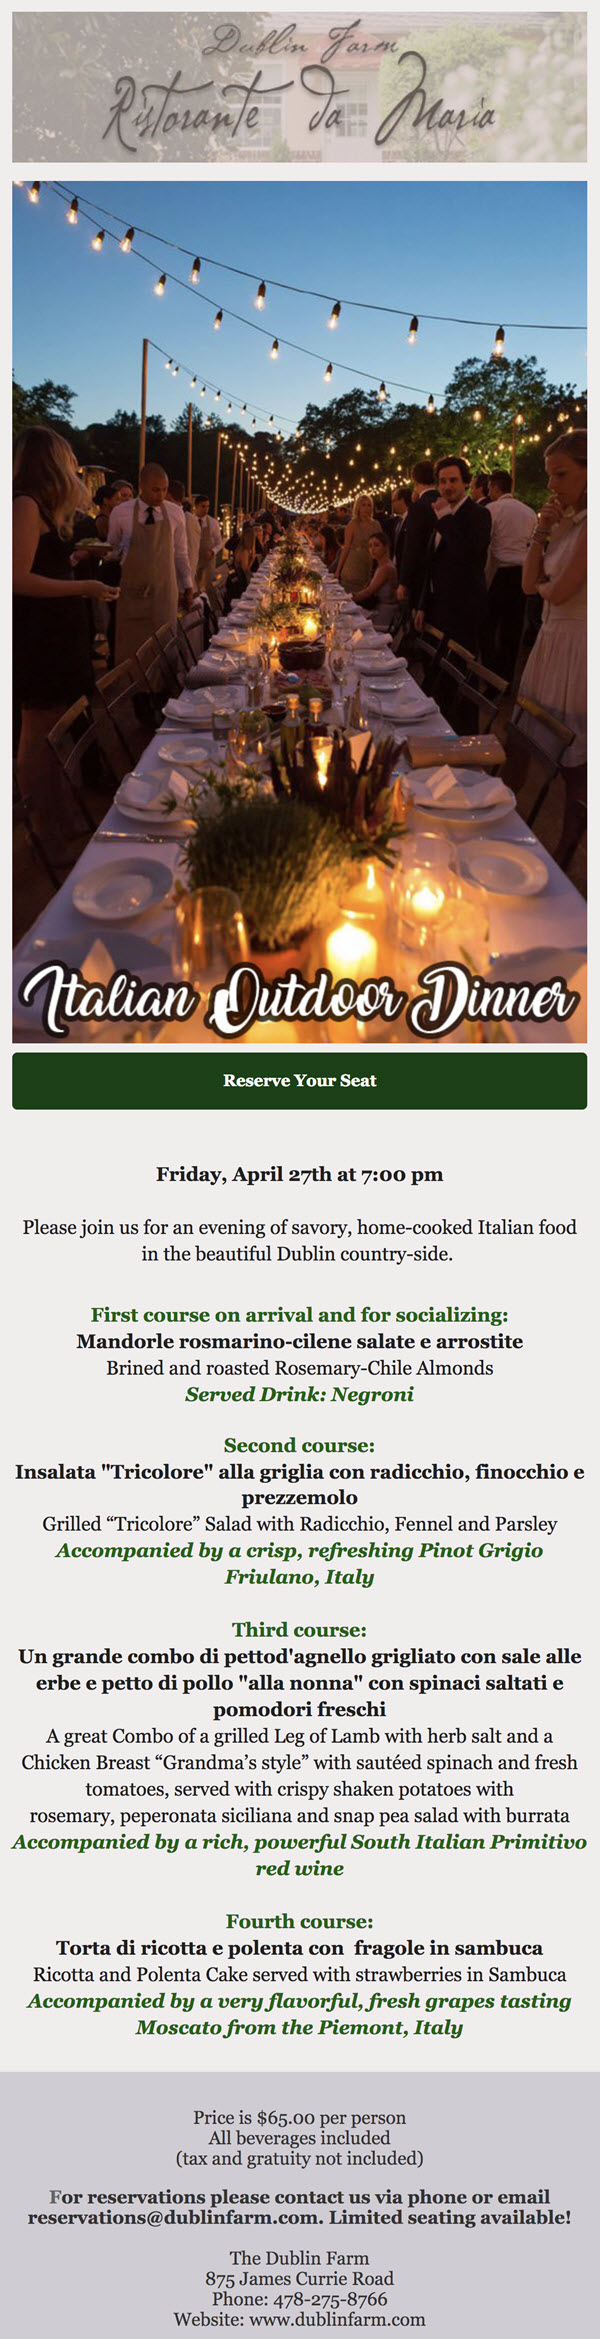 italian-outdoor-dinner-dublin-farm-event